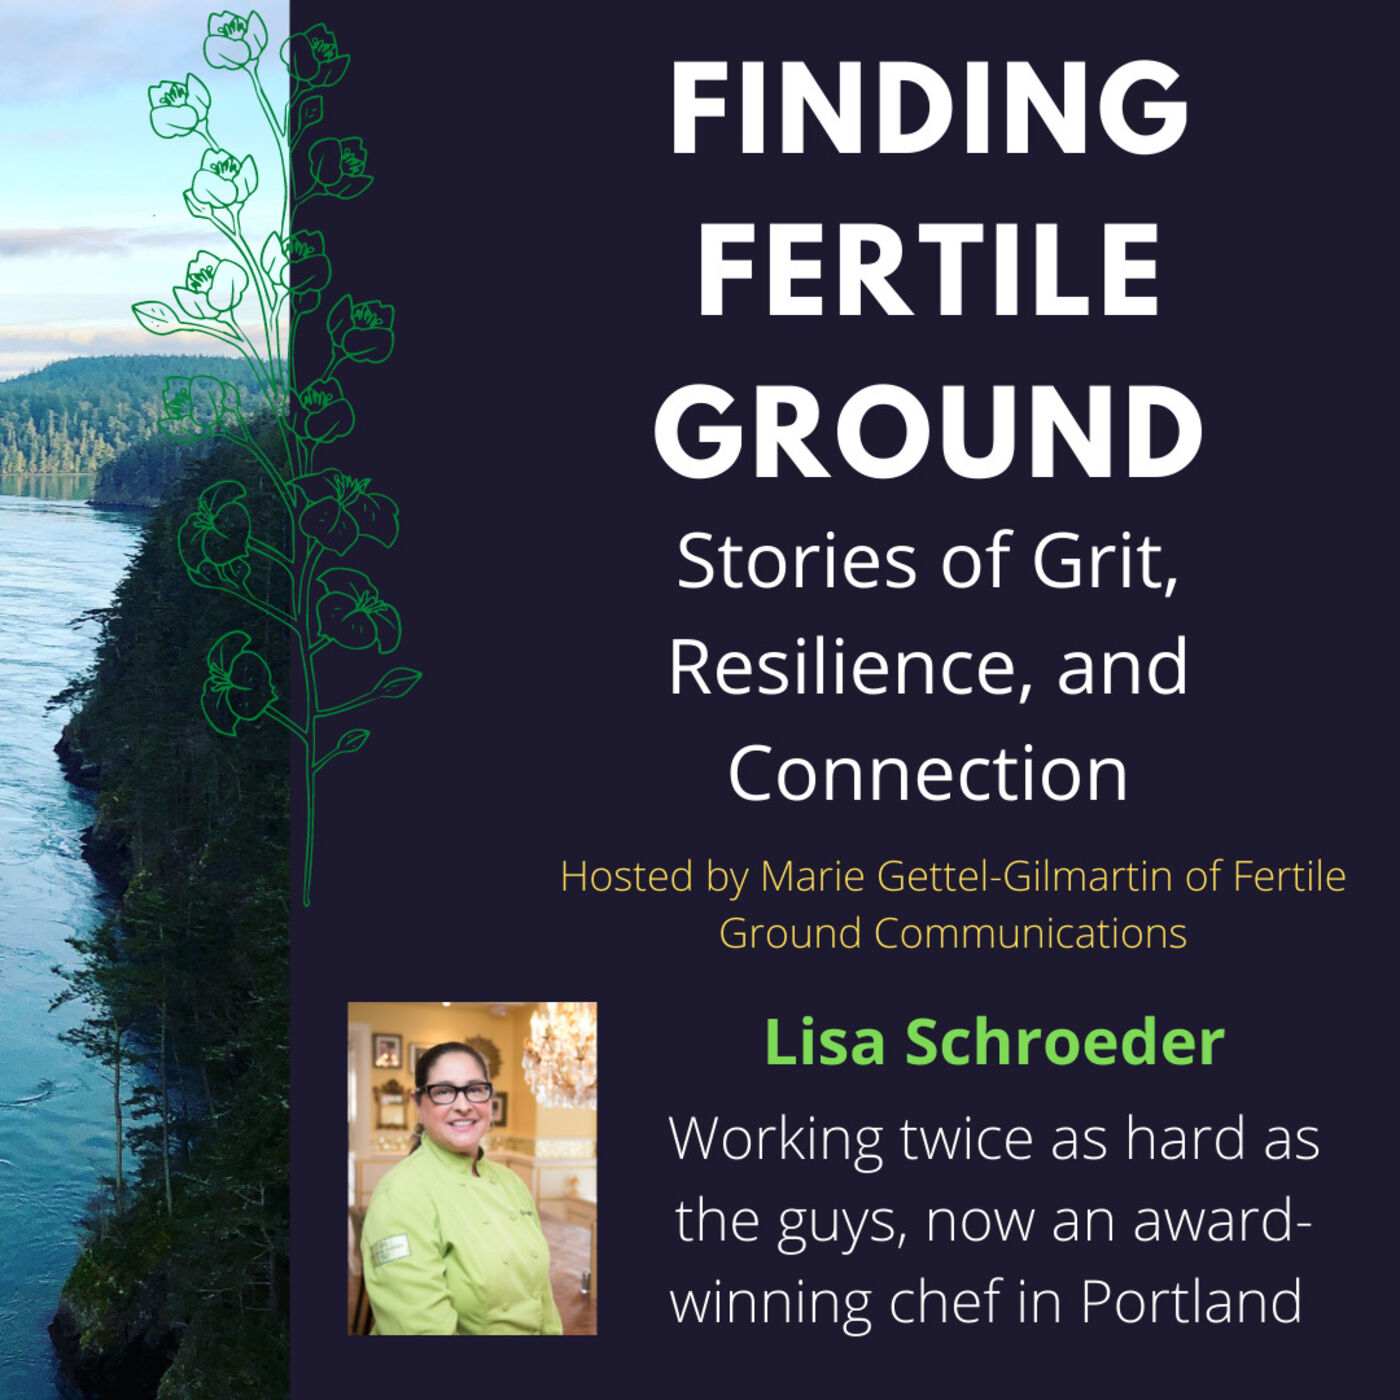 Lisa Schroeder: Working twice as hard as the guys, now an award-winning chef in Portland